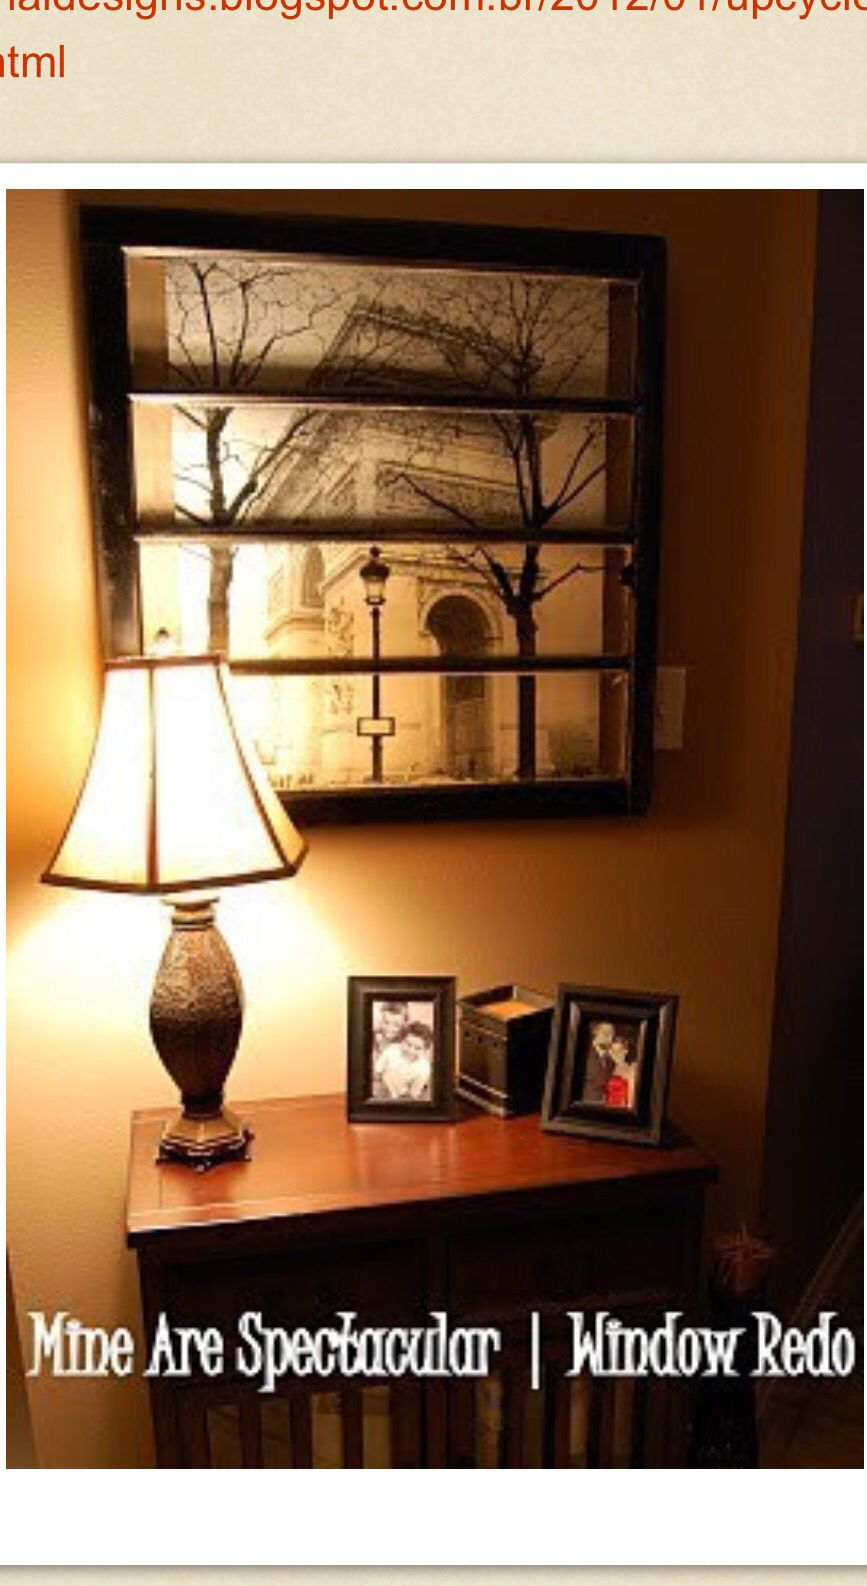 Old window decor  pin by denise de o menezes on home decor indoor  pinterest